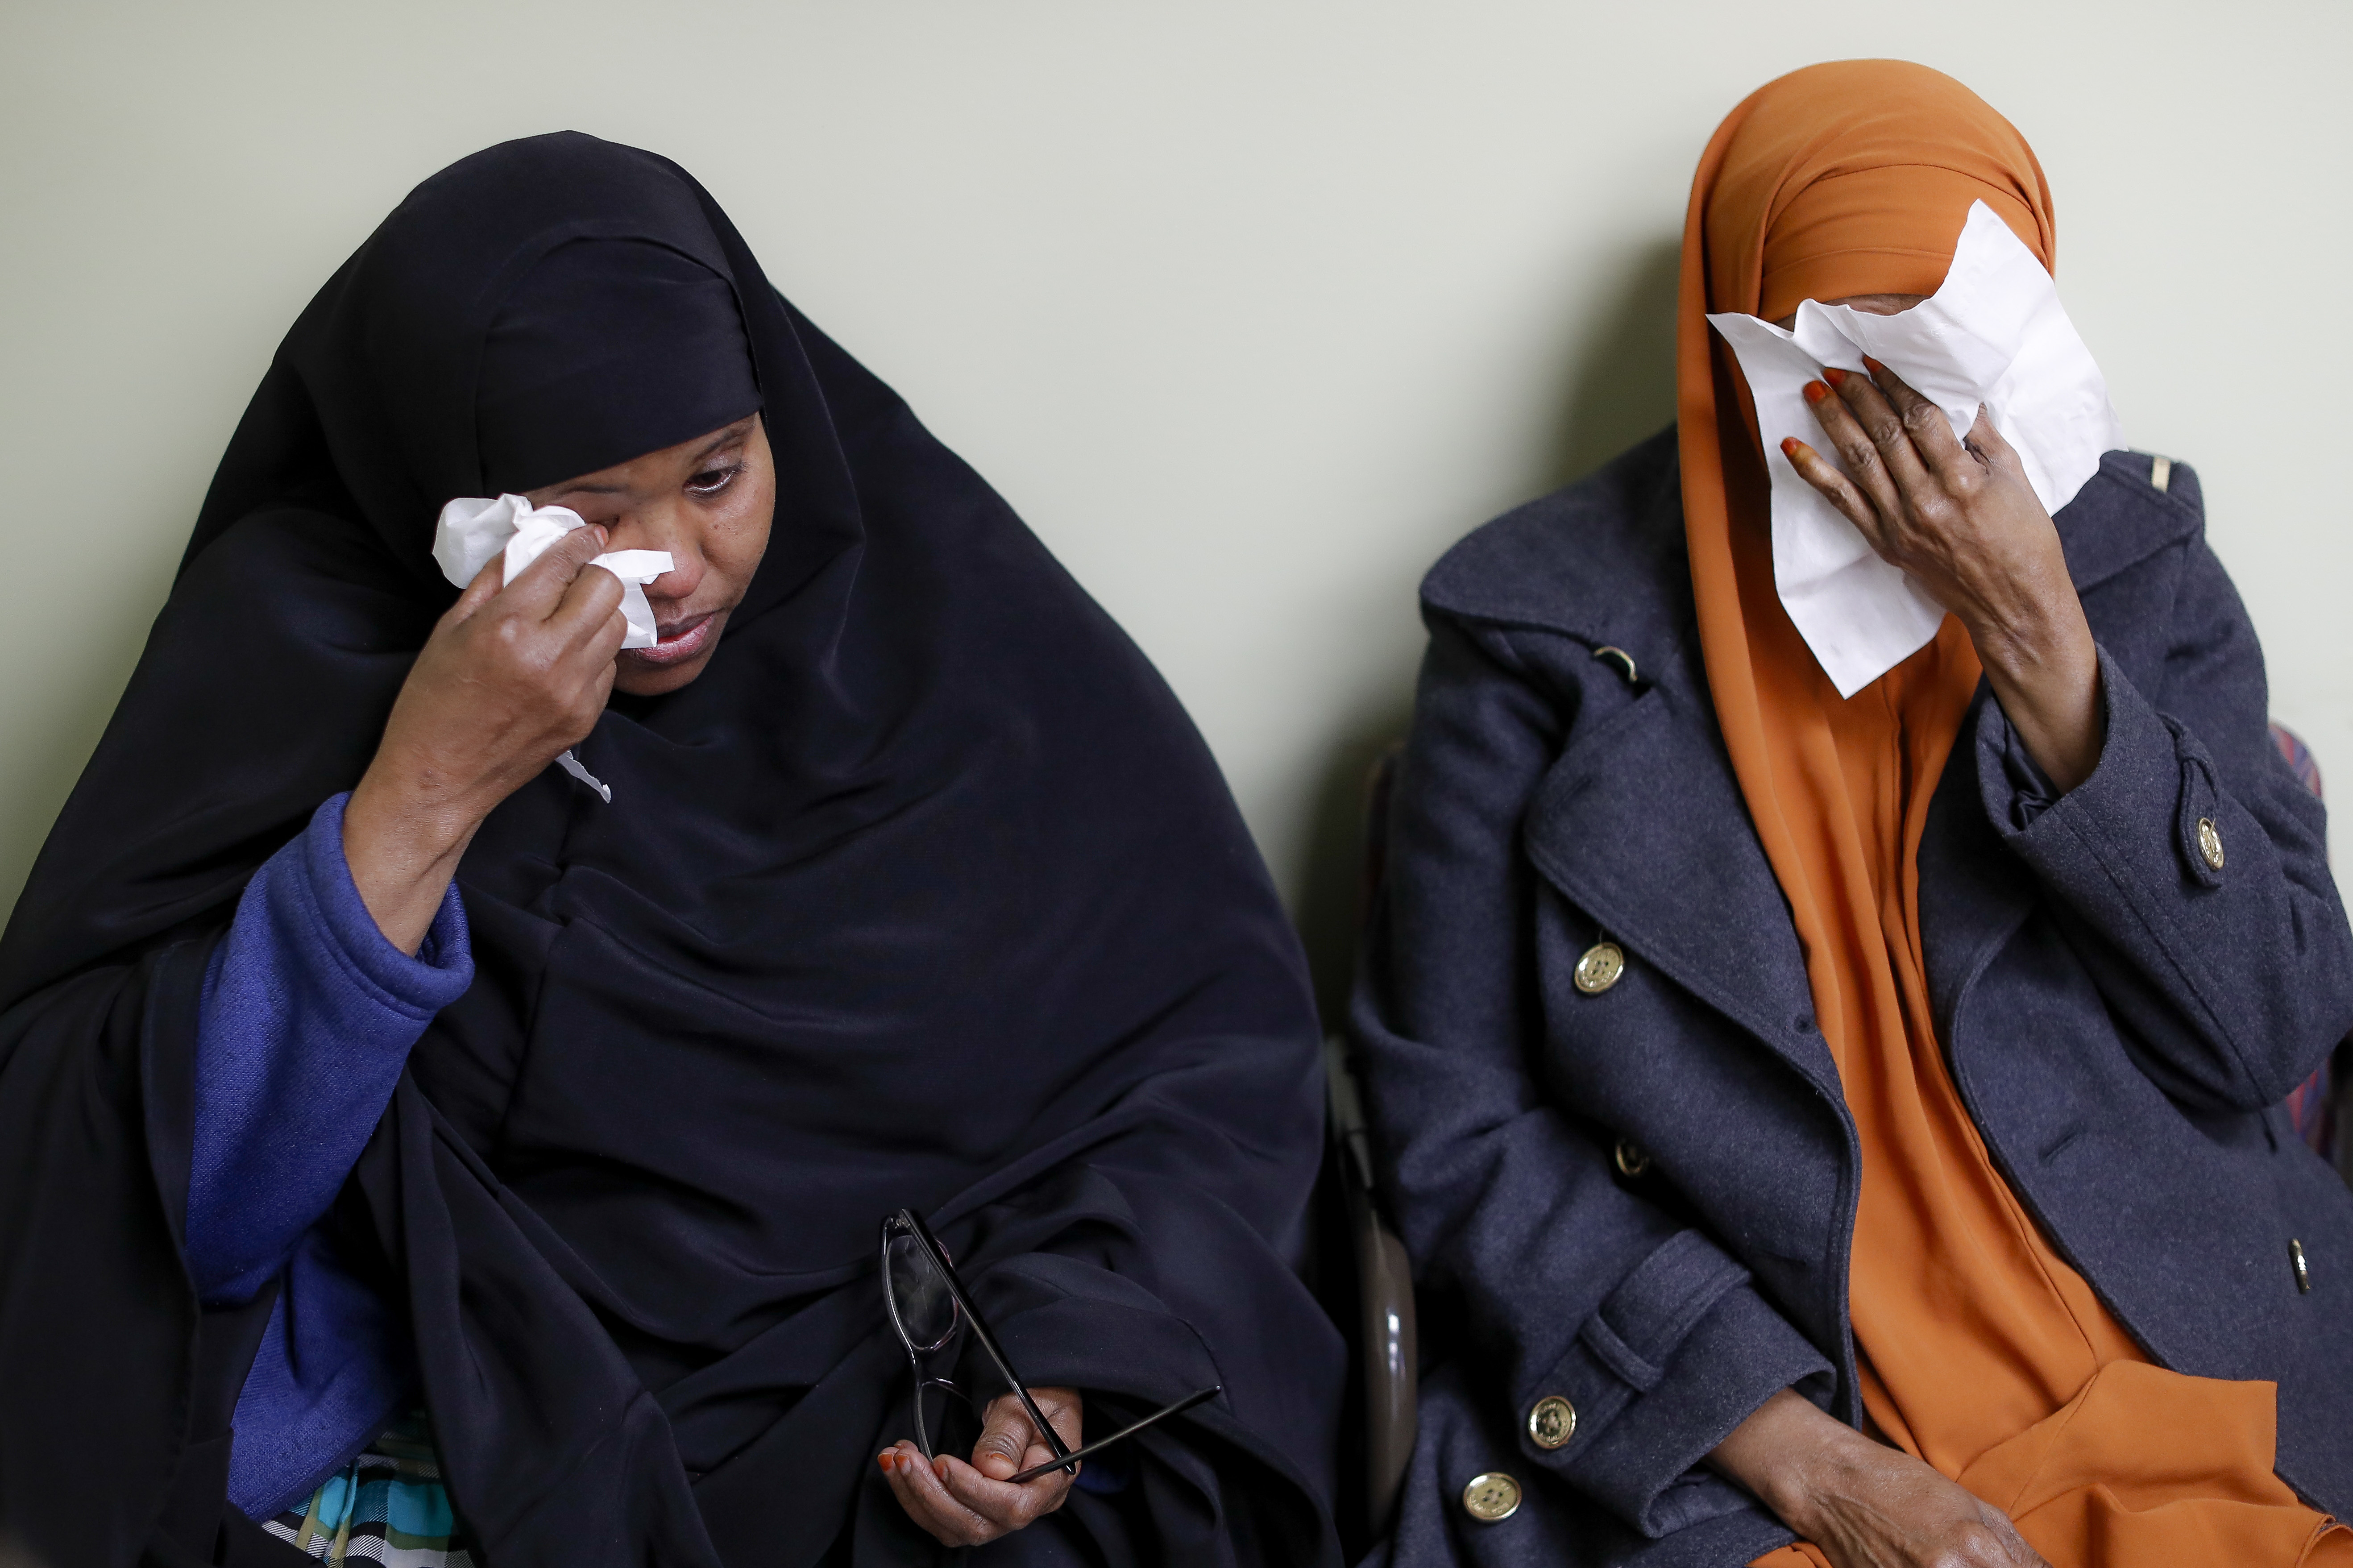 FILE - In this March 16, 2017, file photo, Somali refugees Layla Muali, left, and Hawo Jamile, right, wipe away tears during an interview at the Community Refugee & Immigration Services offices in Columbus, Ohio. Columbus has the country's largest percentage of Somali refugees. A federal judge in Hawaii further weakened the already-diluted travel ban in a ruling Thursday, July 13, 2017, by vastly expanding the list of U.S. family relationships that visitors from six Muslim-majority countries can use to get into the country. (AP Photo/John Minchillo, File)